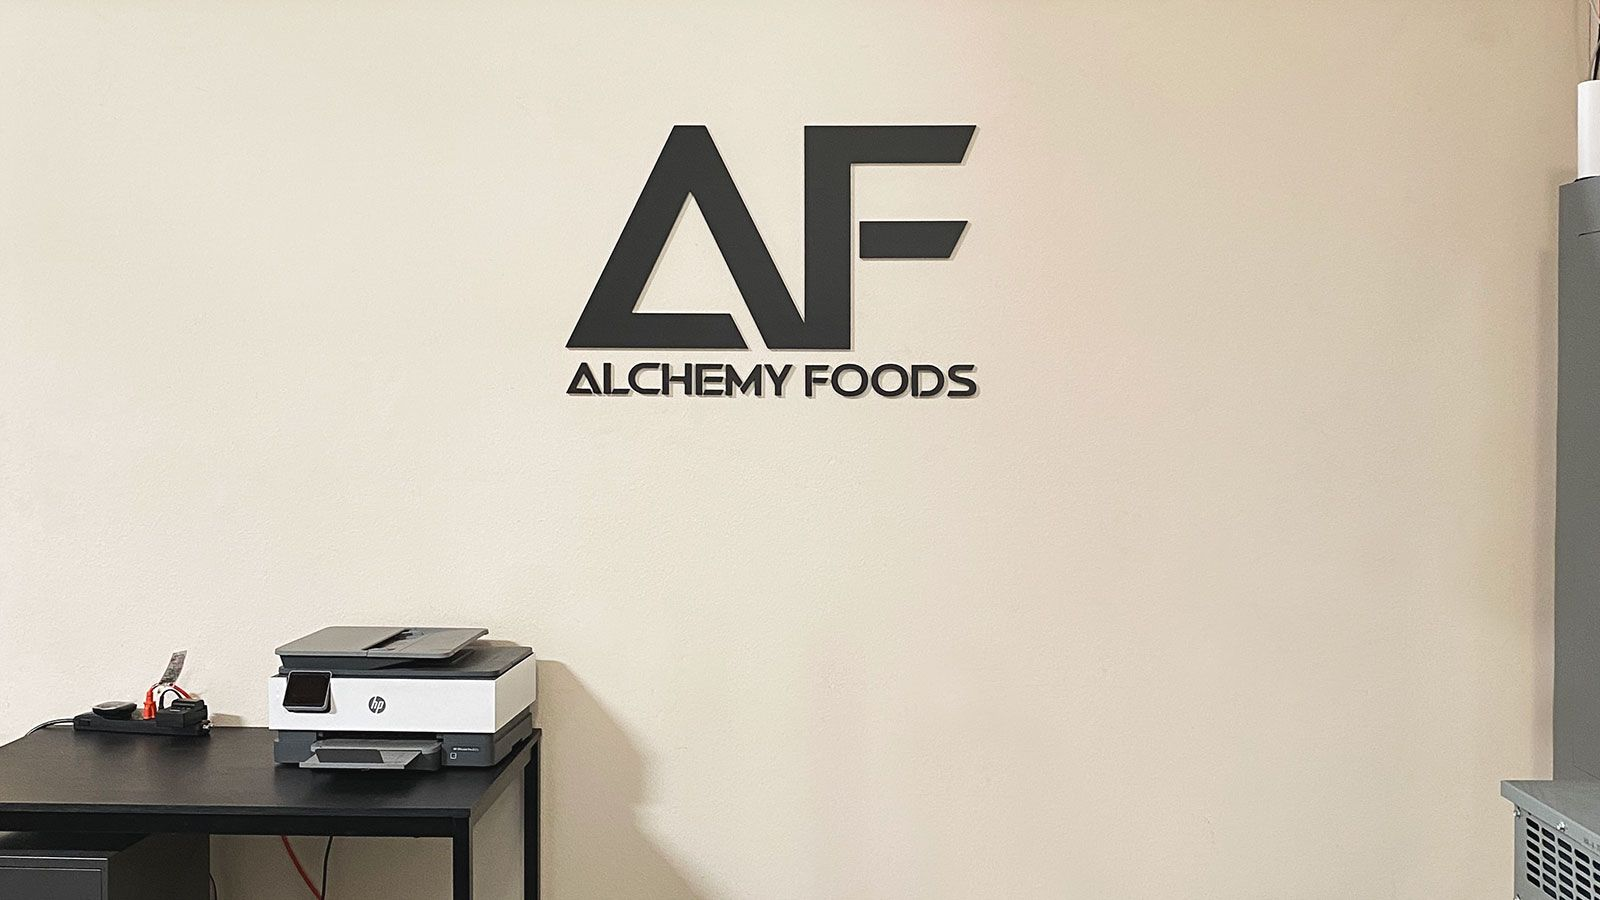 Alchemy Foods acrylic 3D letters